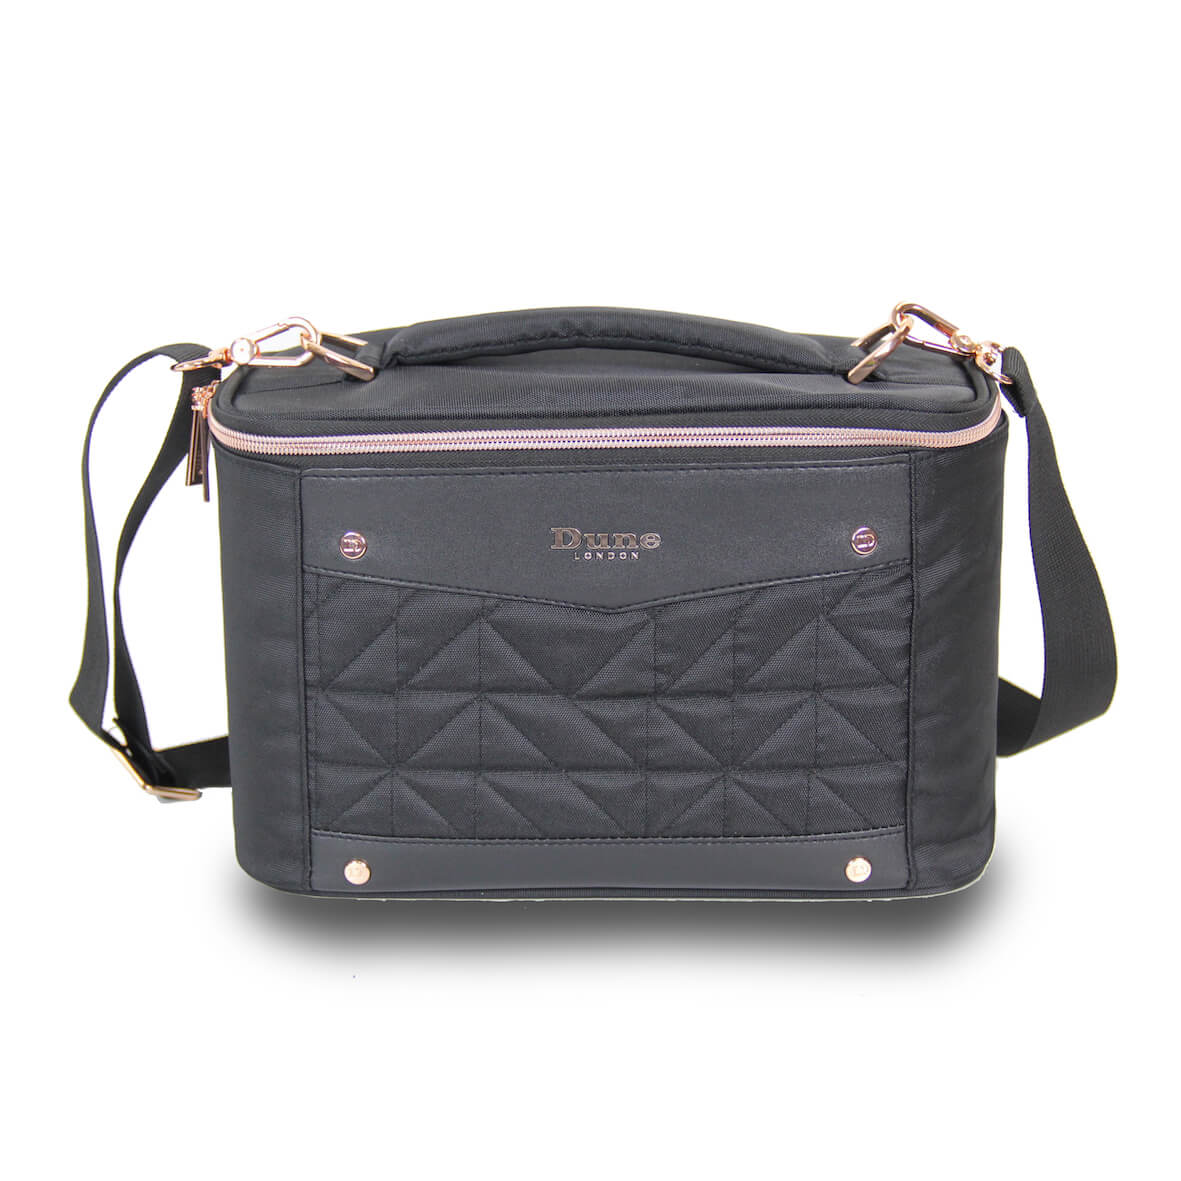 Dune London Tianna Vanity Case